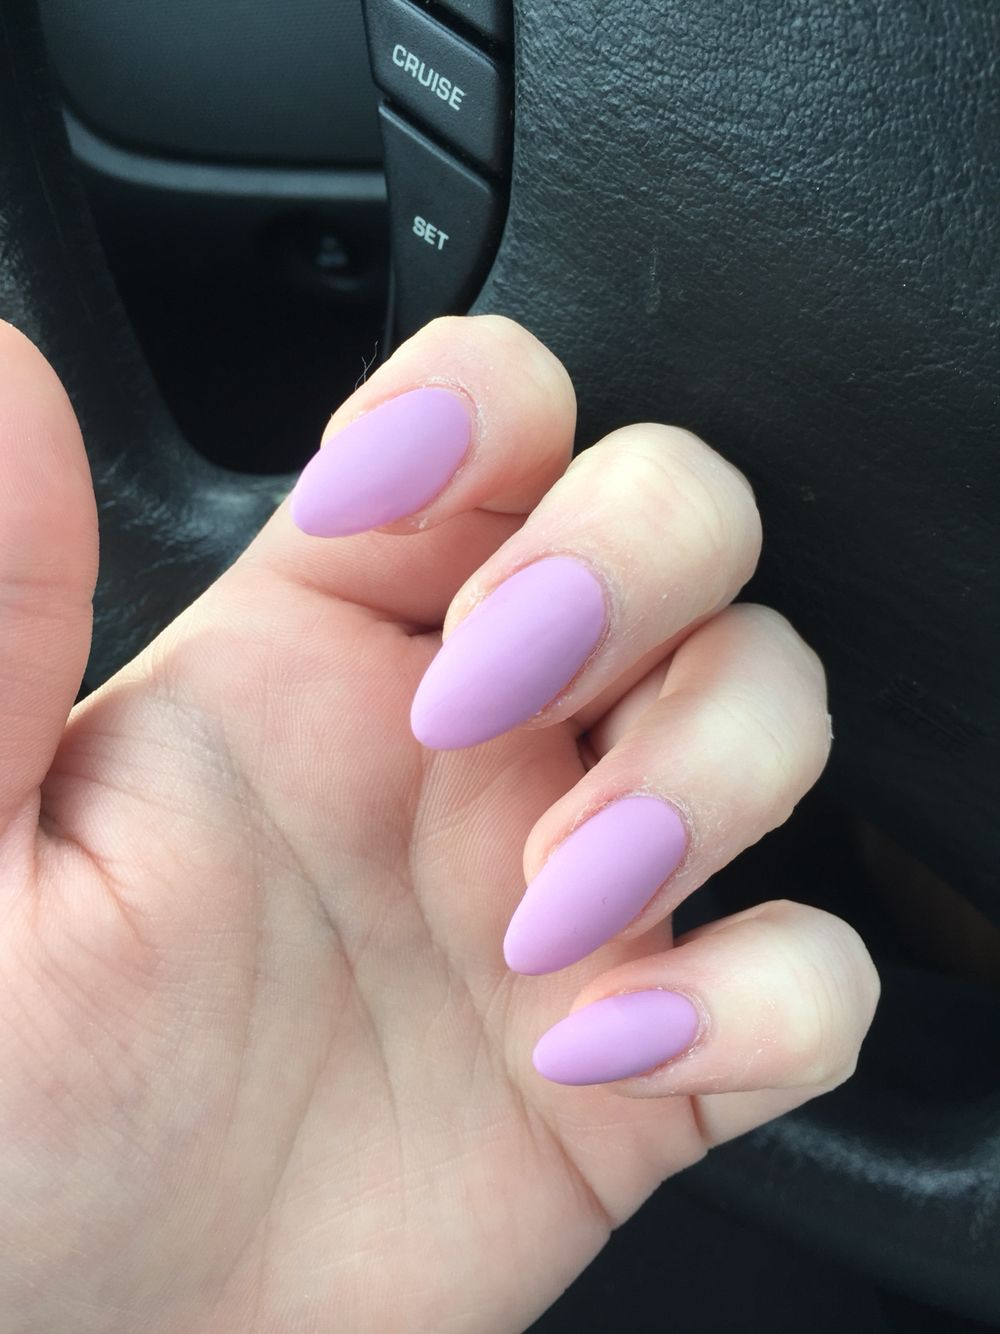 almond shaped nails with lavender